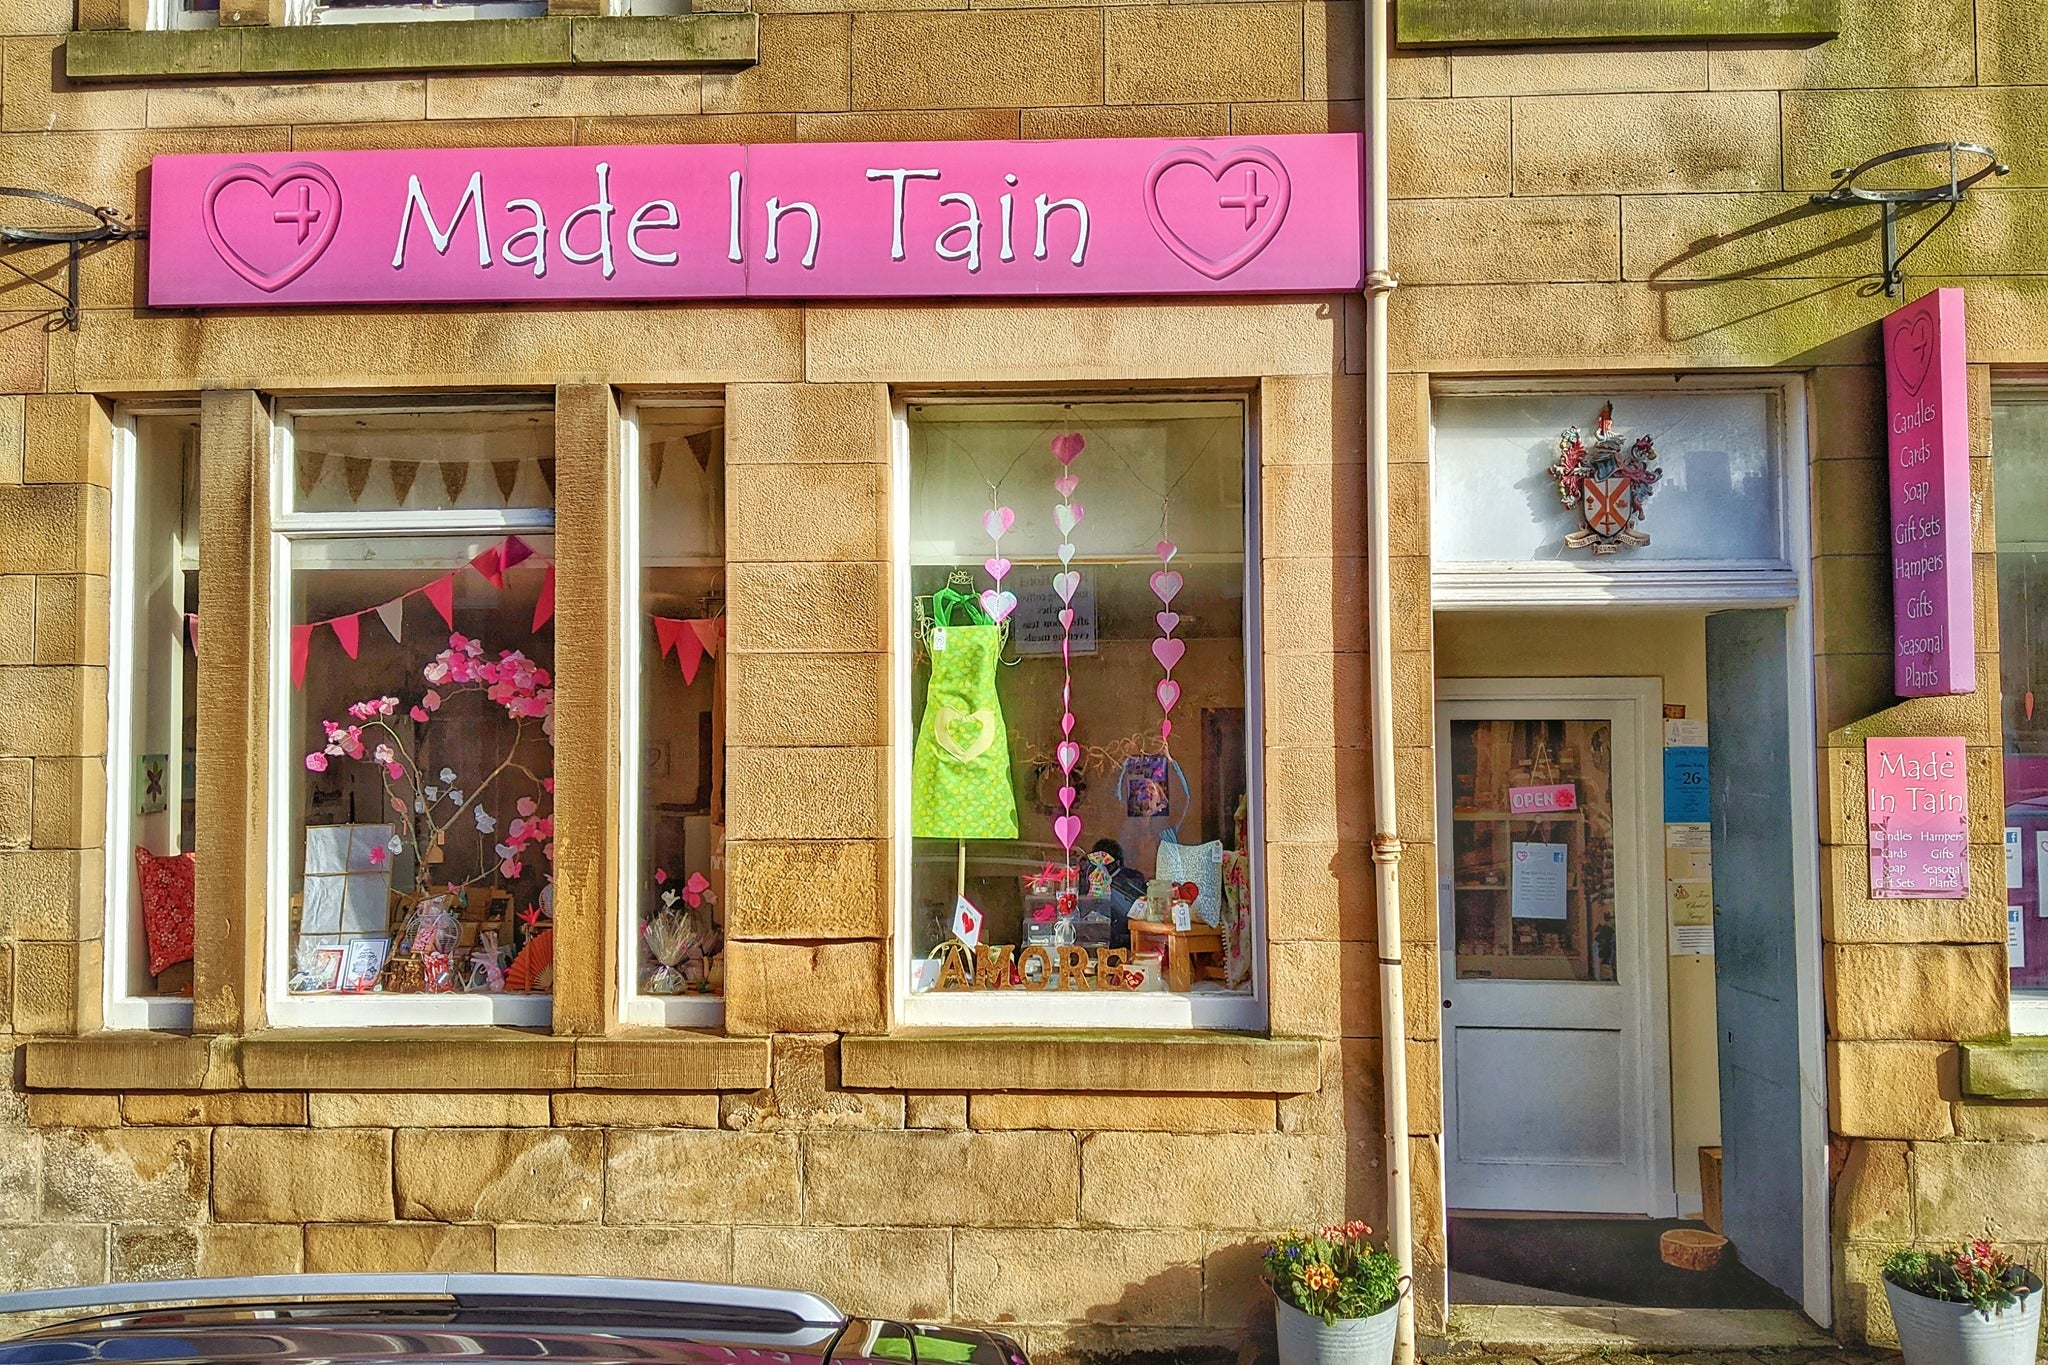 Made in Tain